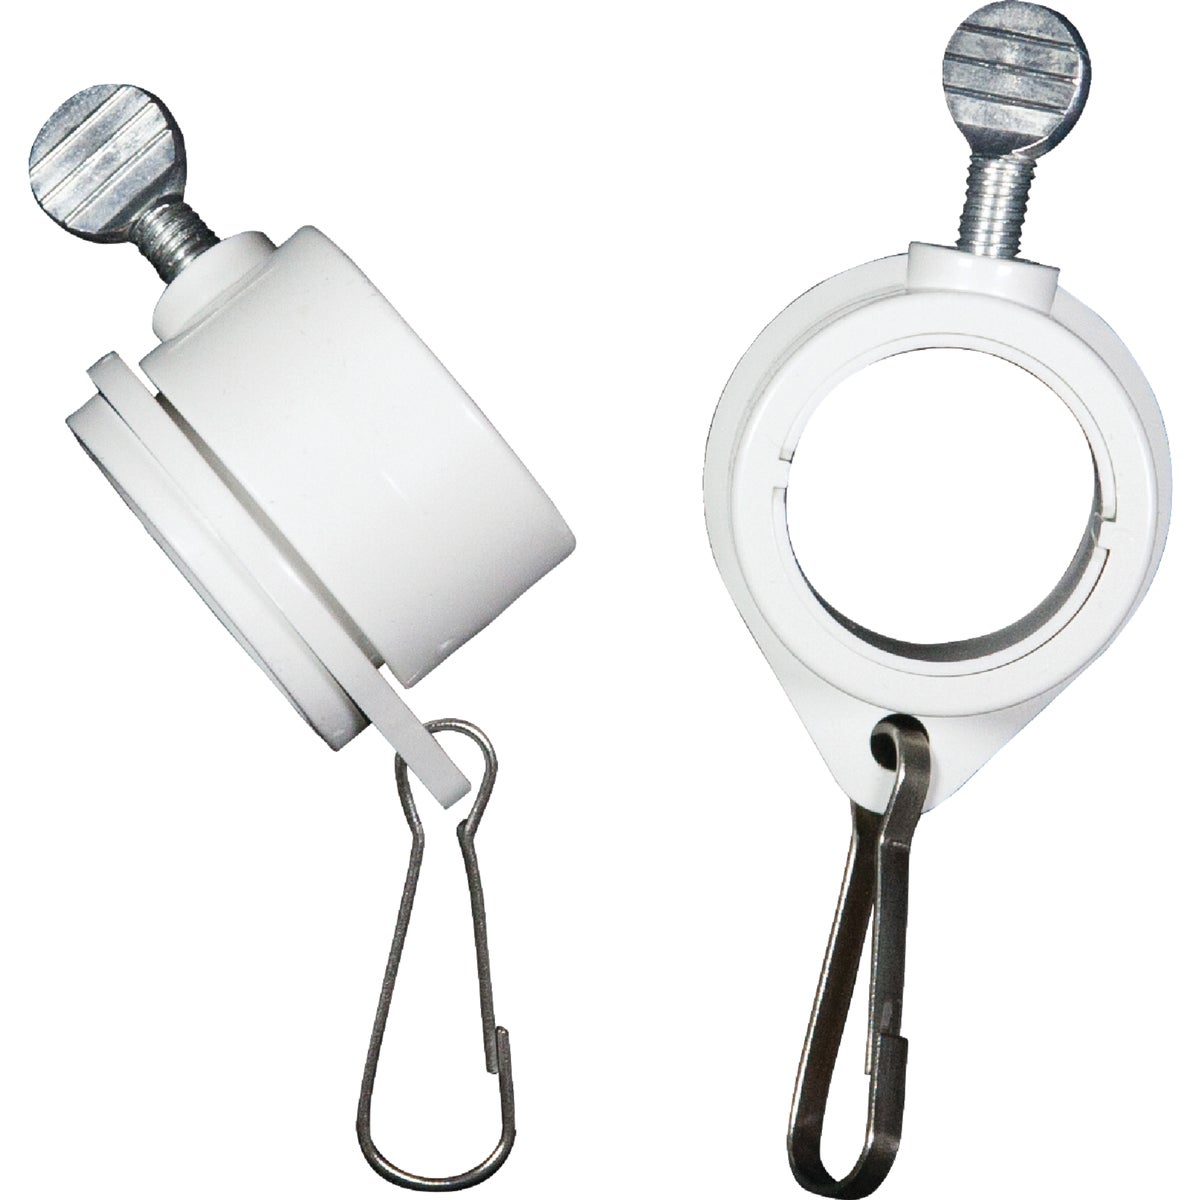 PAIR FLAG MOUNTING RING